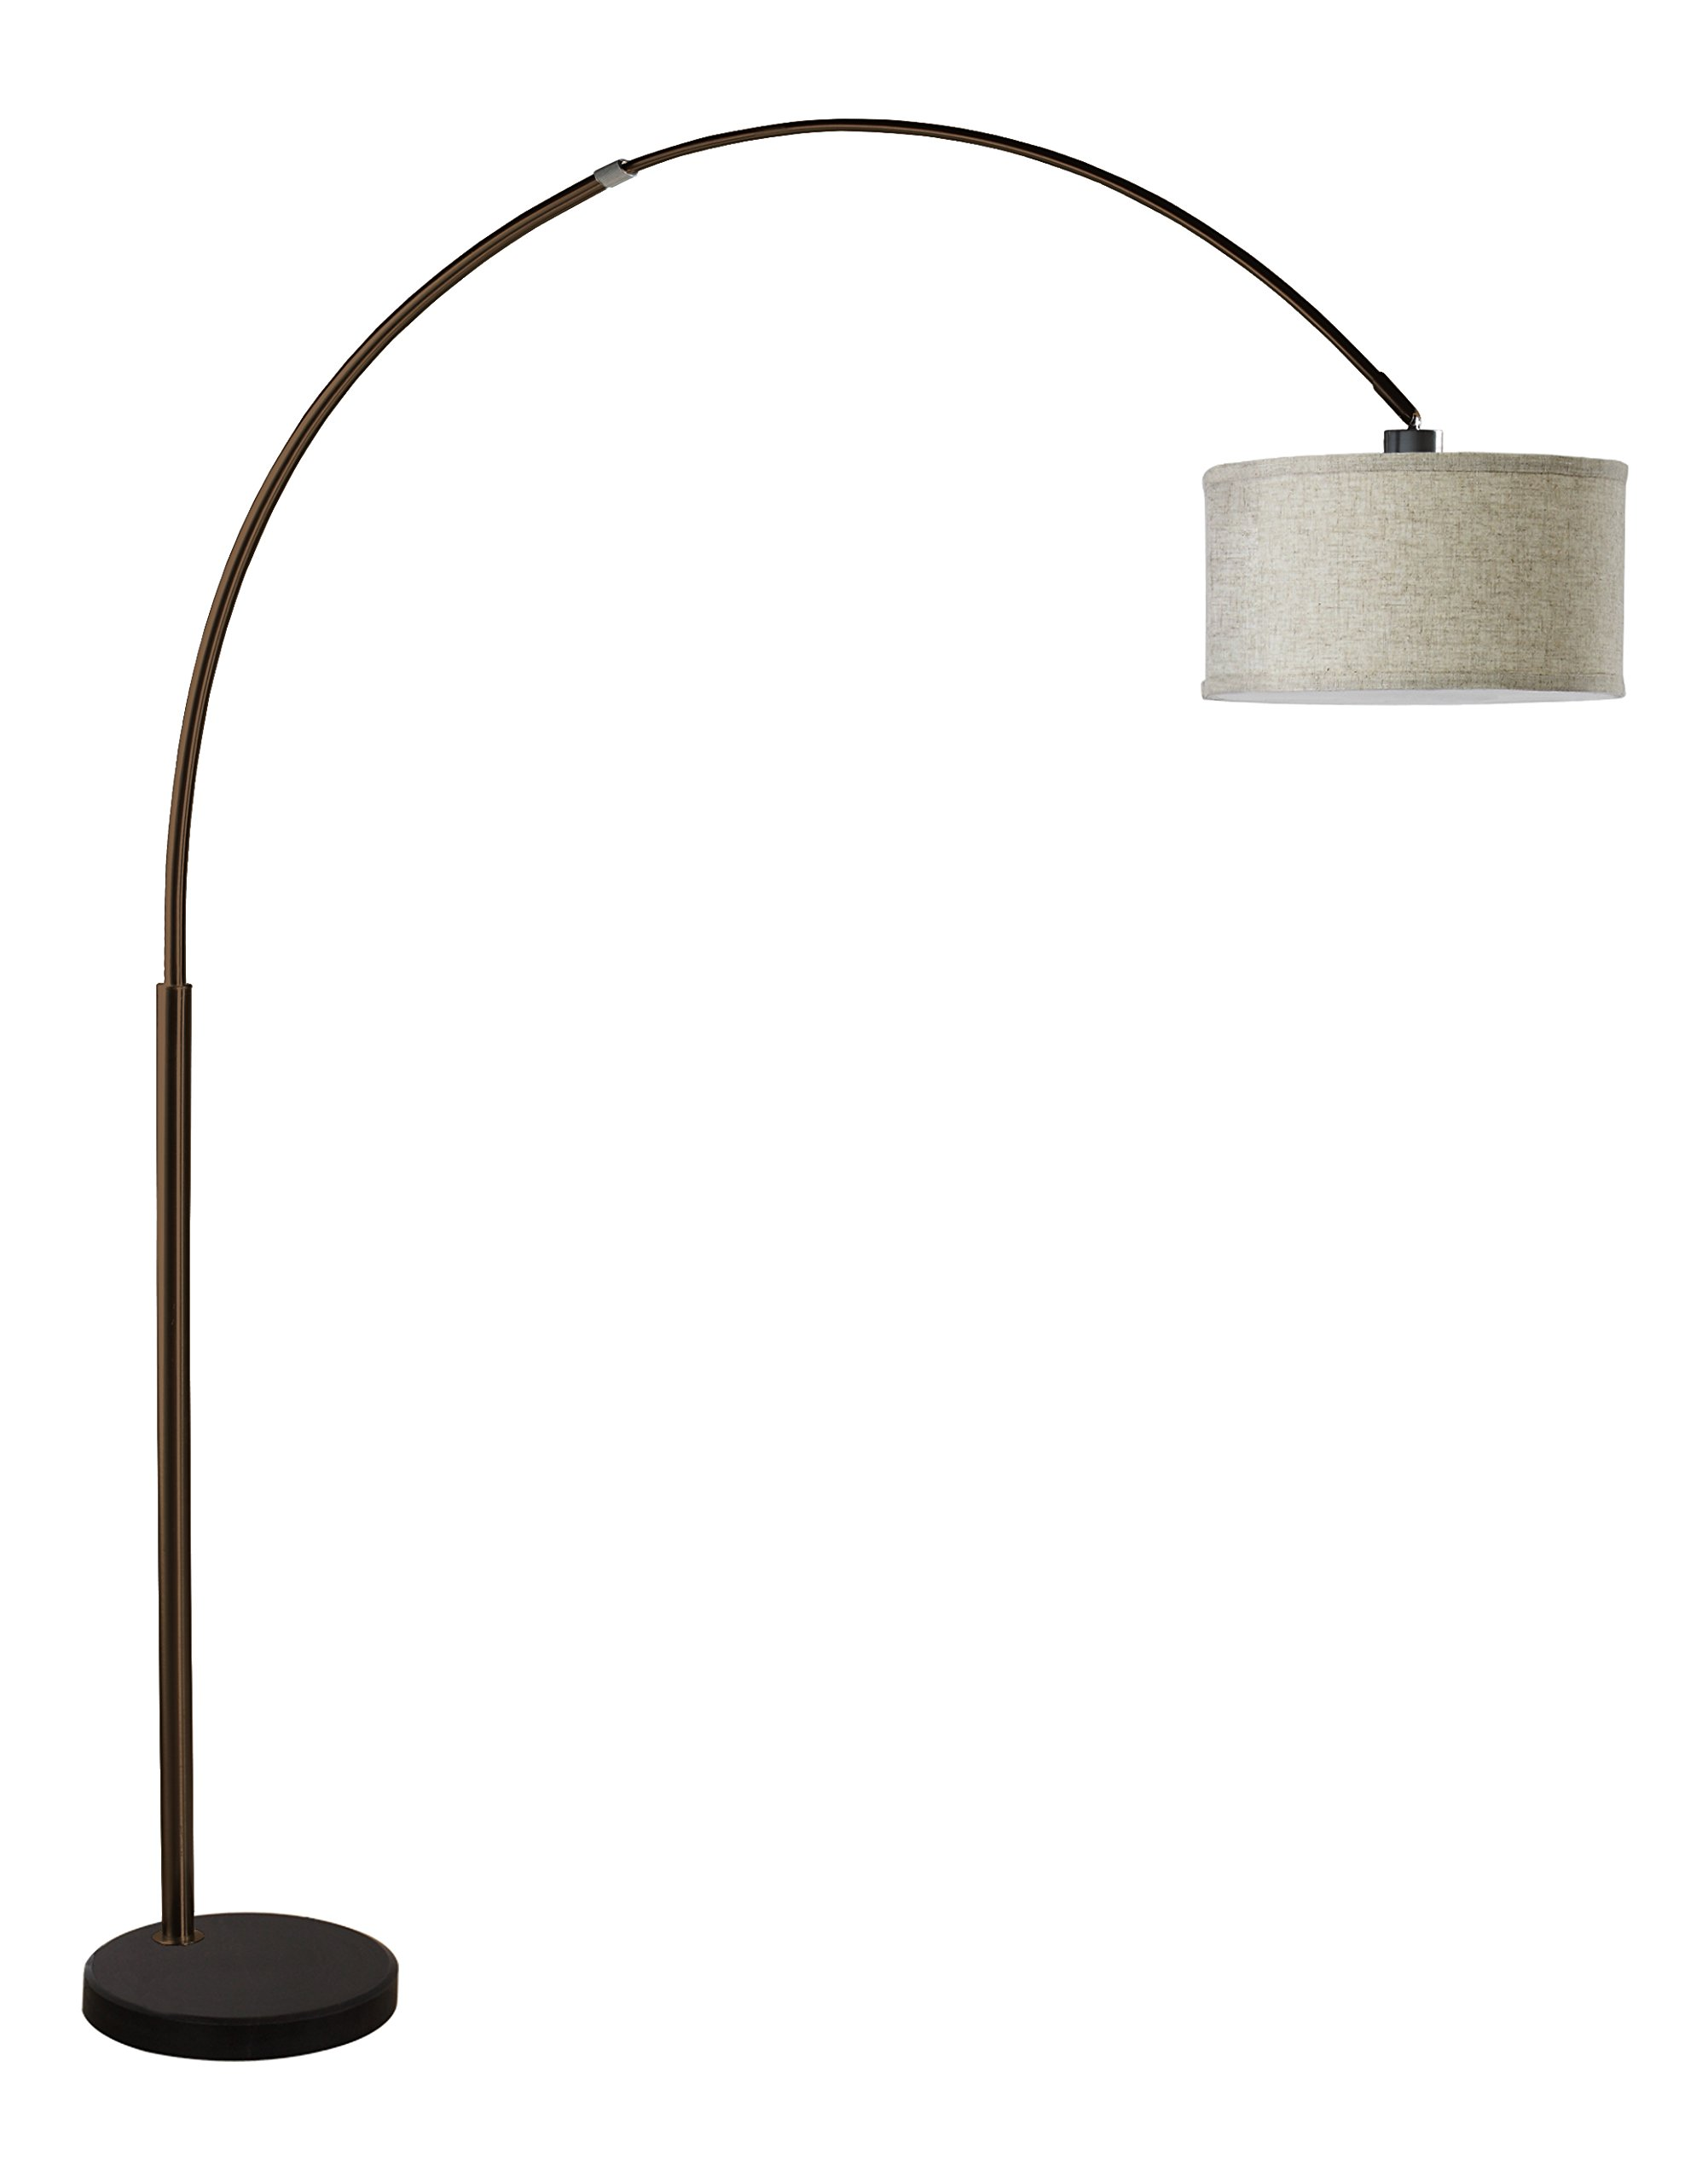 SH Lighting 6938ES-XL 81'' H Steel Adjustable Arching Floor Lamp with Marble Base, Espresso by SH Lighting